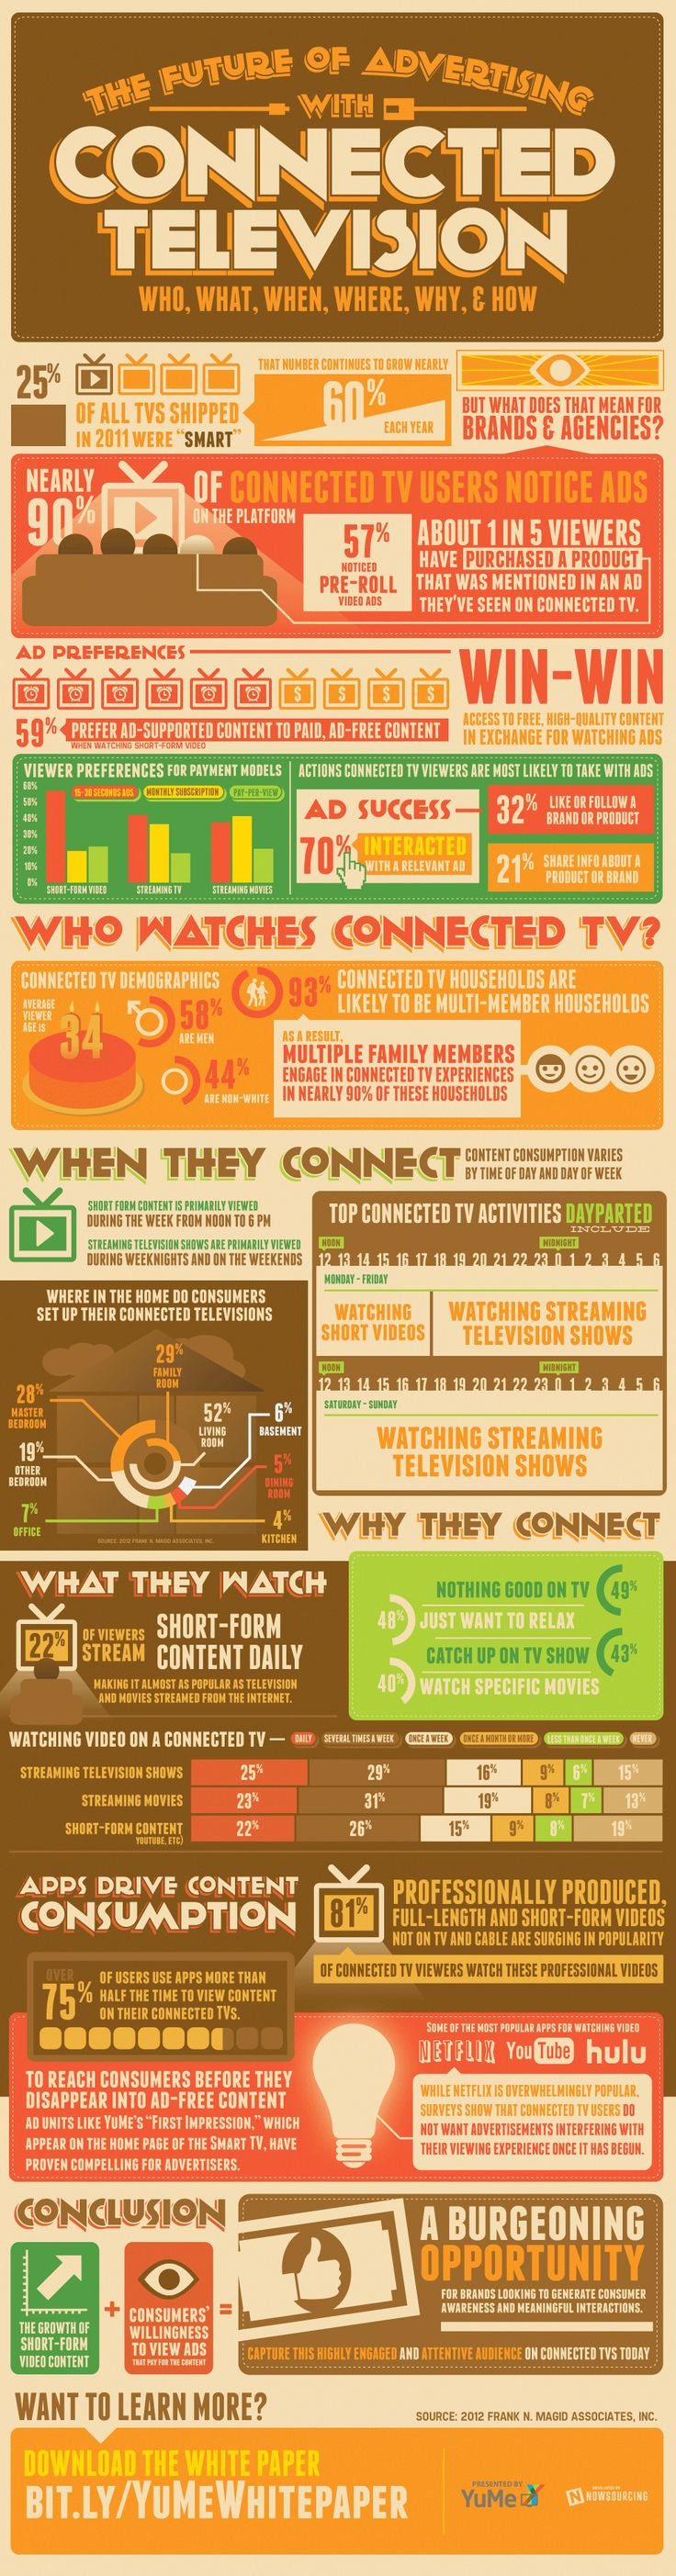 The Future of Advertising with Connected Television [Infographic]